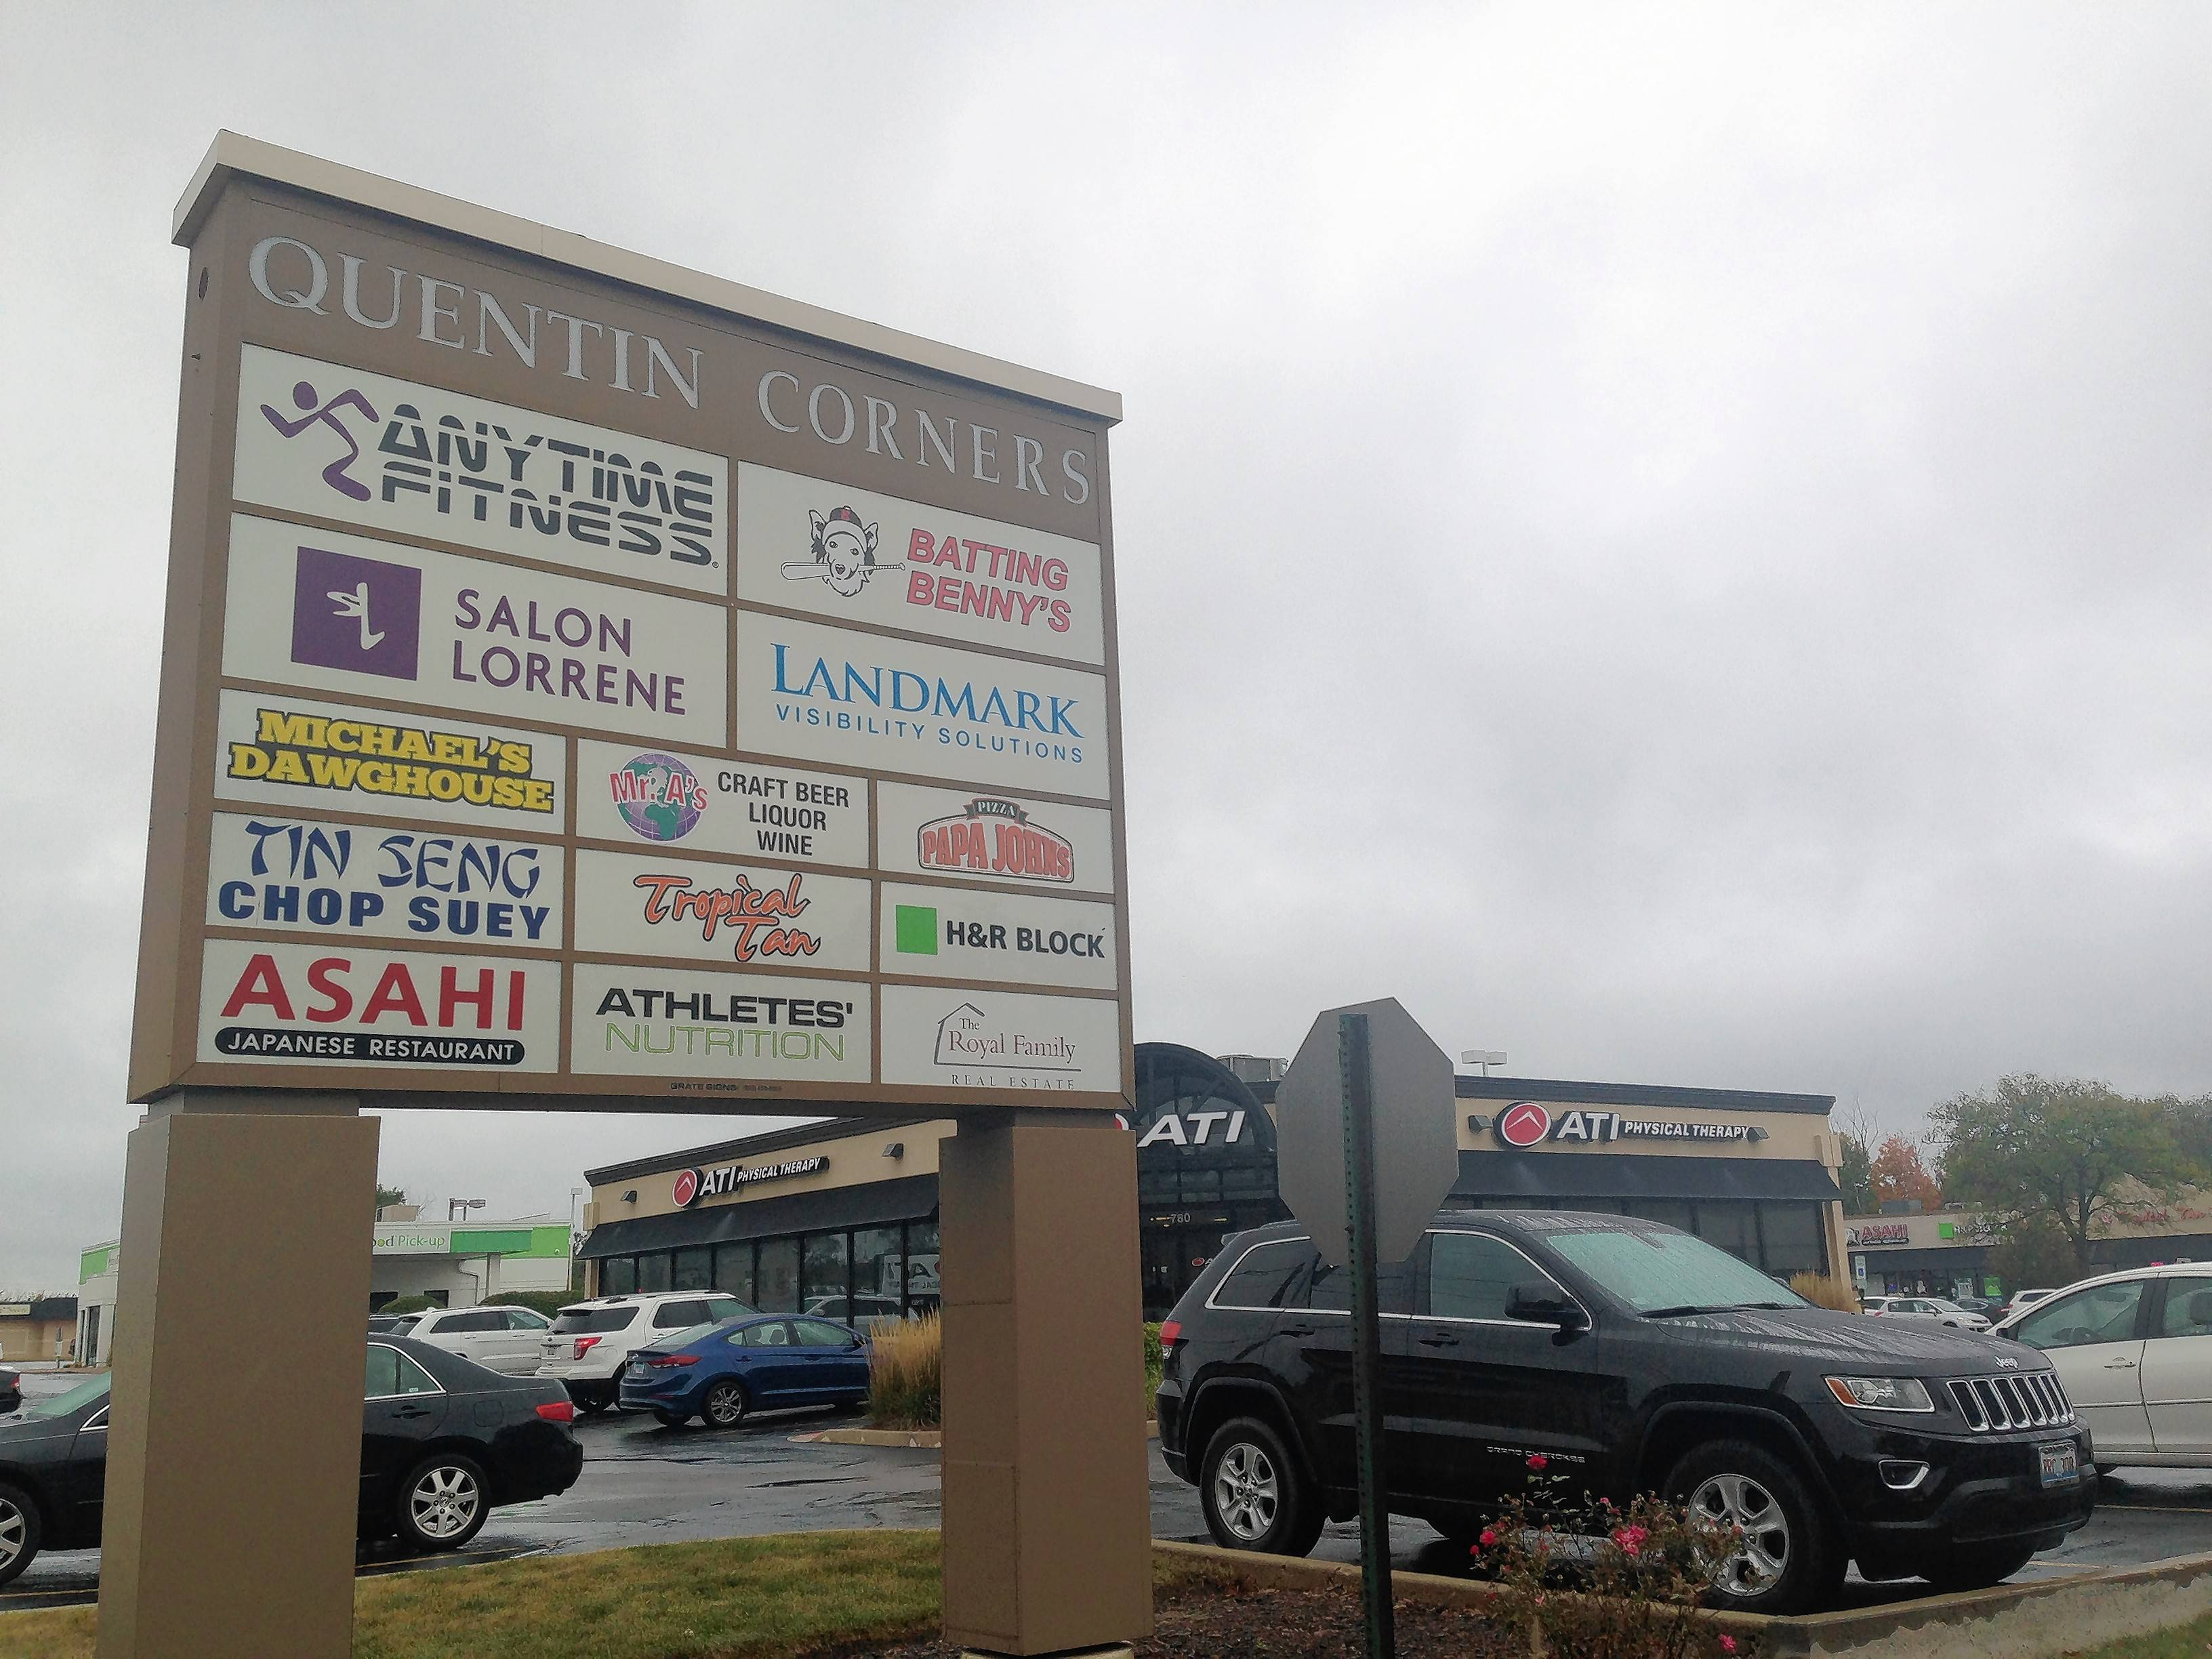 Animal hospital proposed for Quentin Corners in Palatine